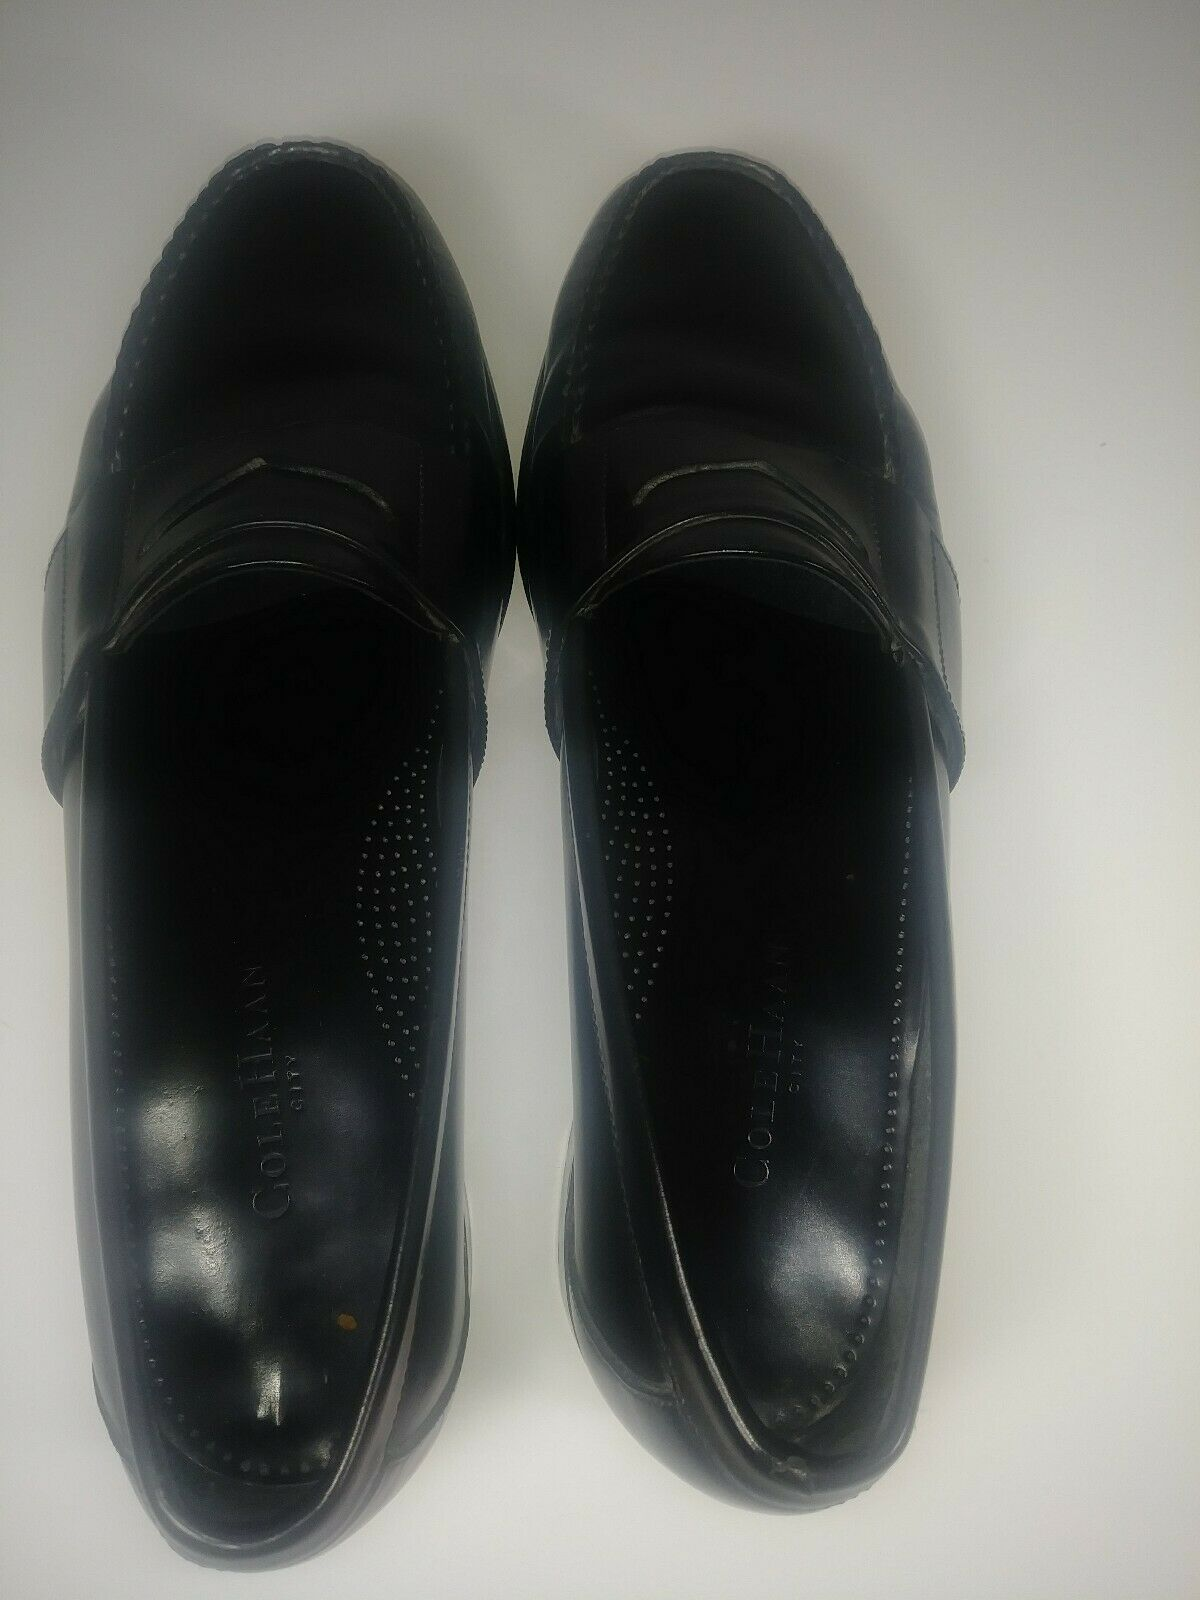 Mens Cole Haan Pinch Penny Dress Shoes Loafers Size 12 MSRP $200 image 4